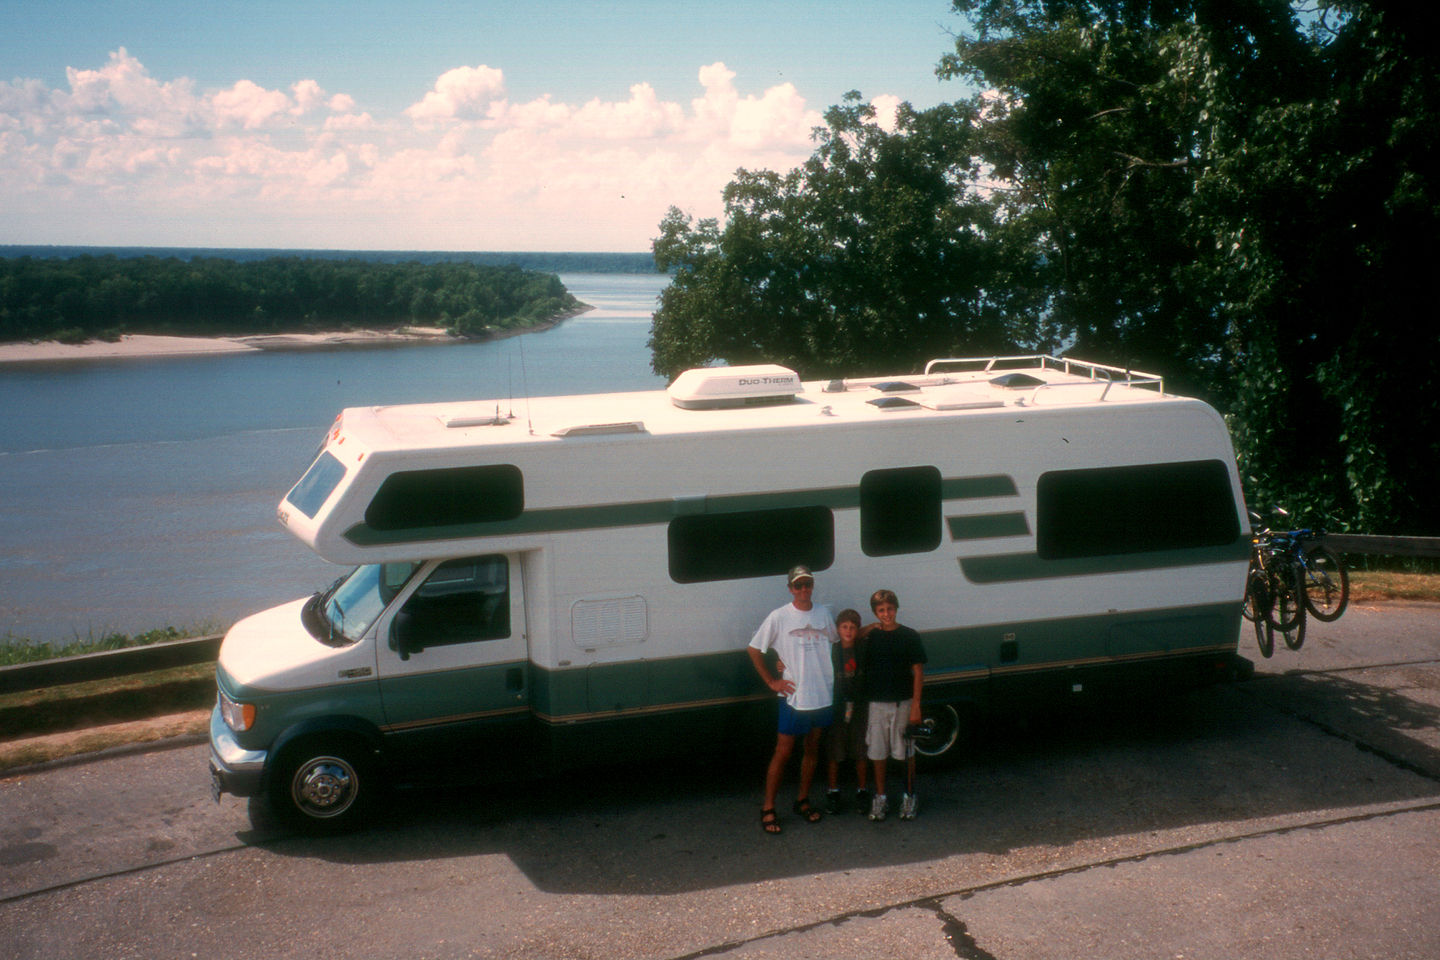 RV poised to cross the mightly Mississippi River